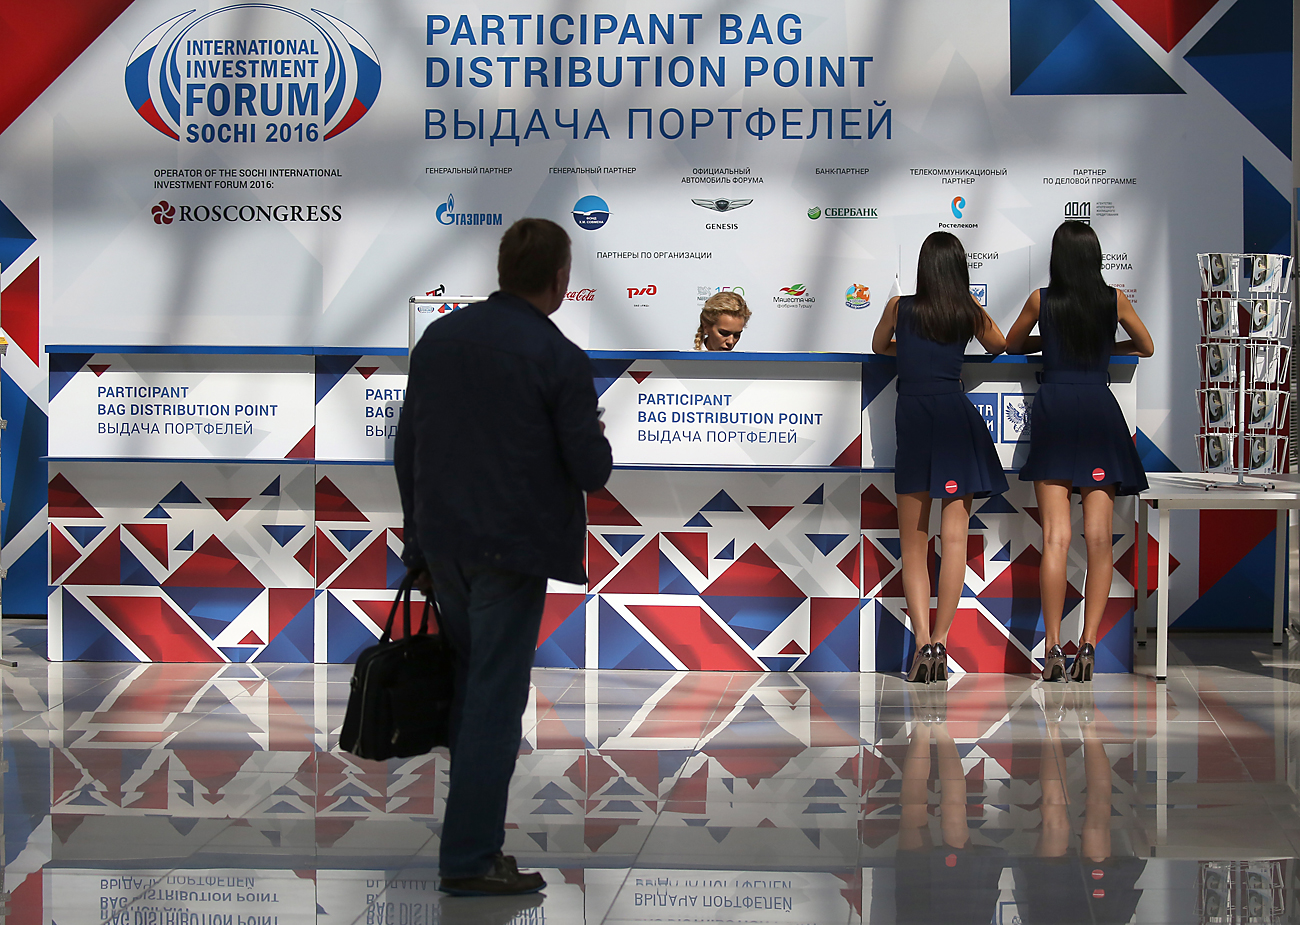 The 2016 Sochi International Investment Forum at the Main Media Centre of Sochi's Olympic Park in Sochi, Russia, September 29, 2016.